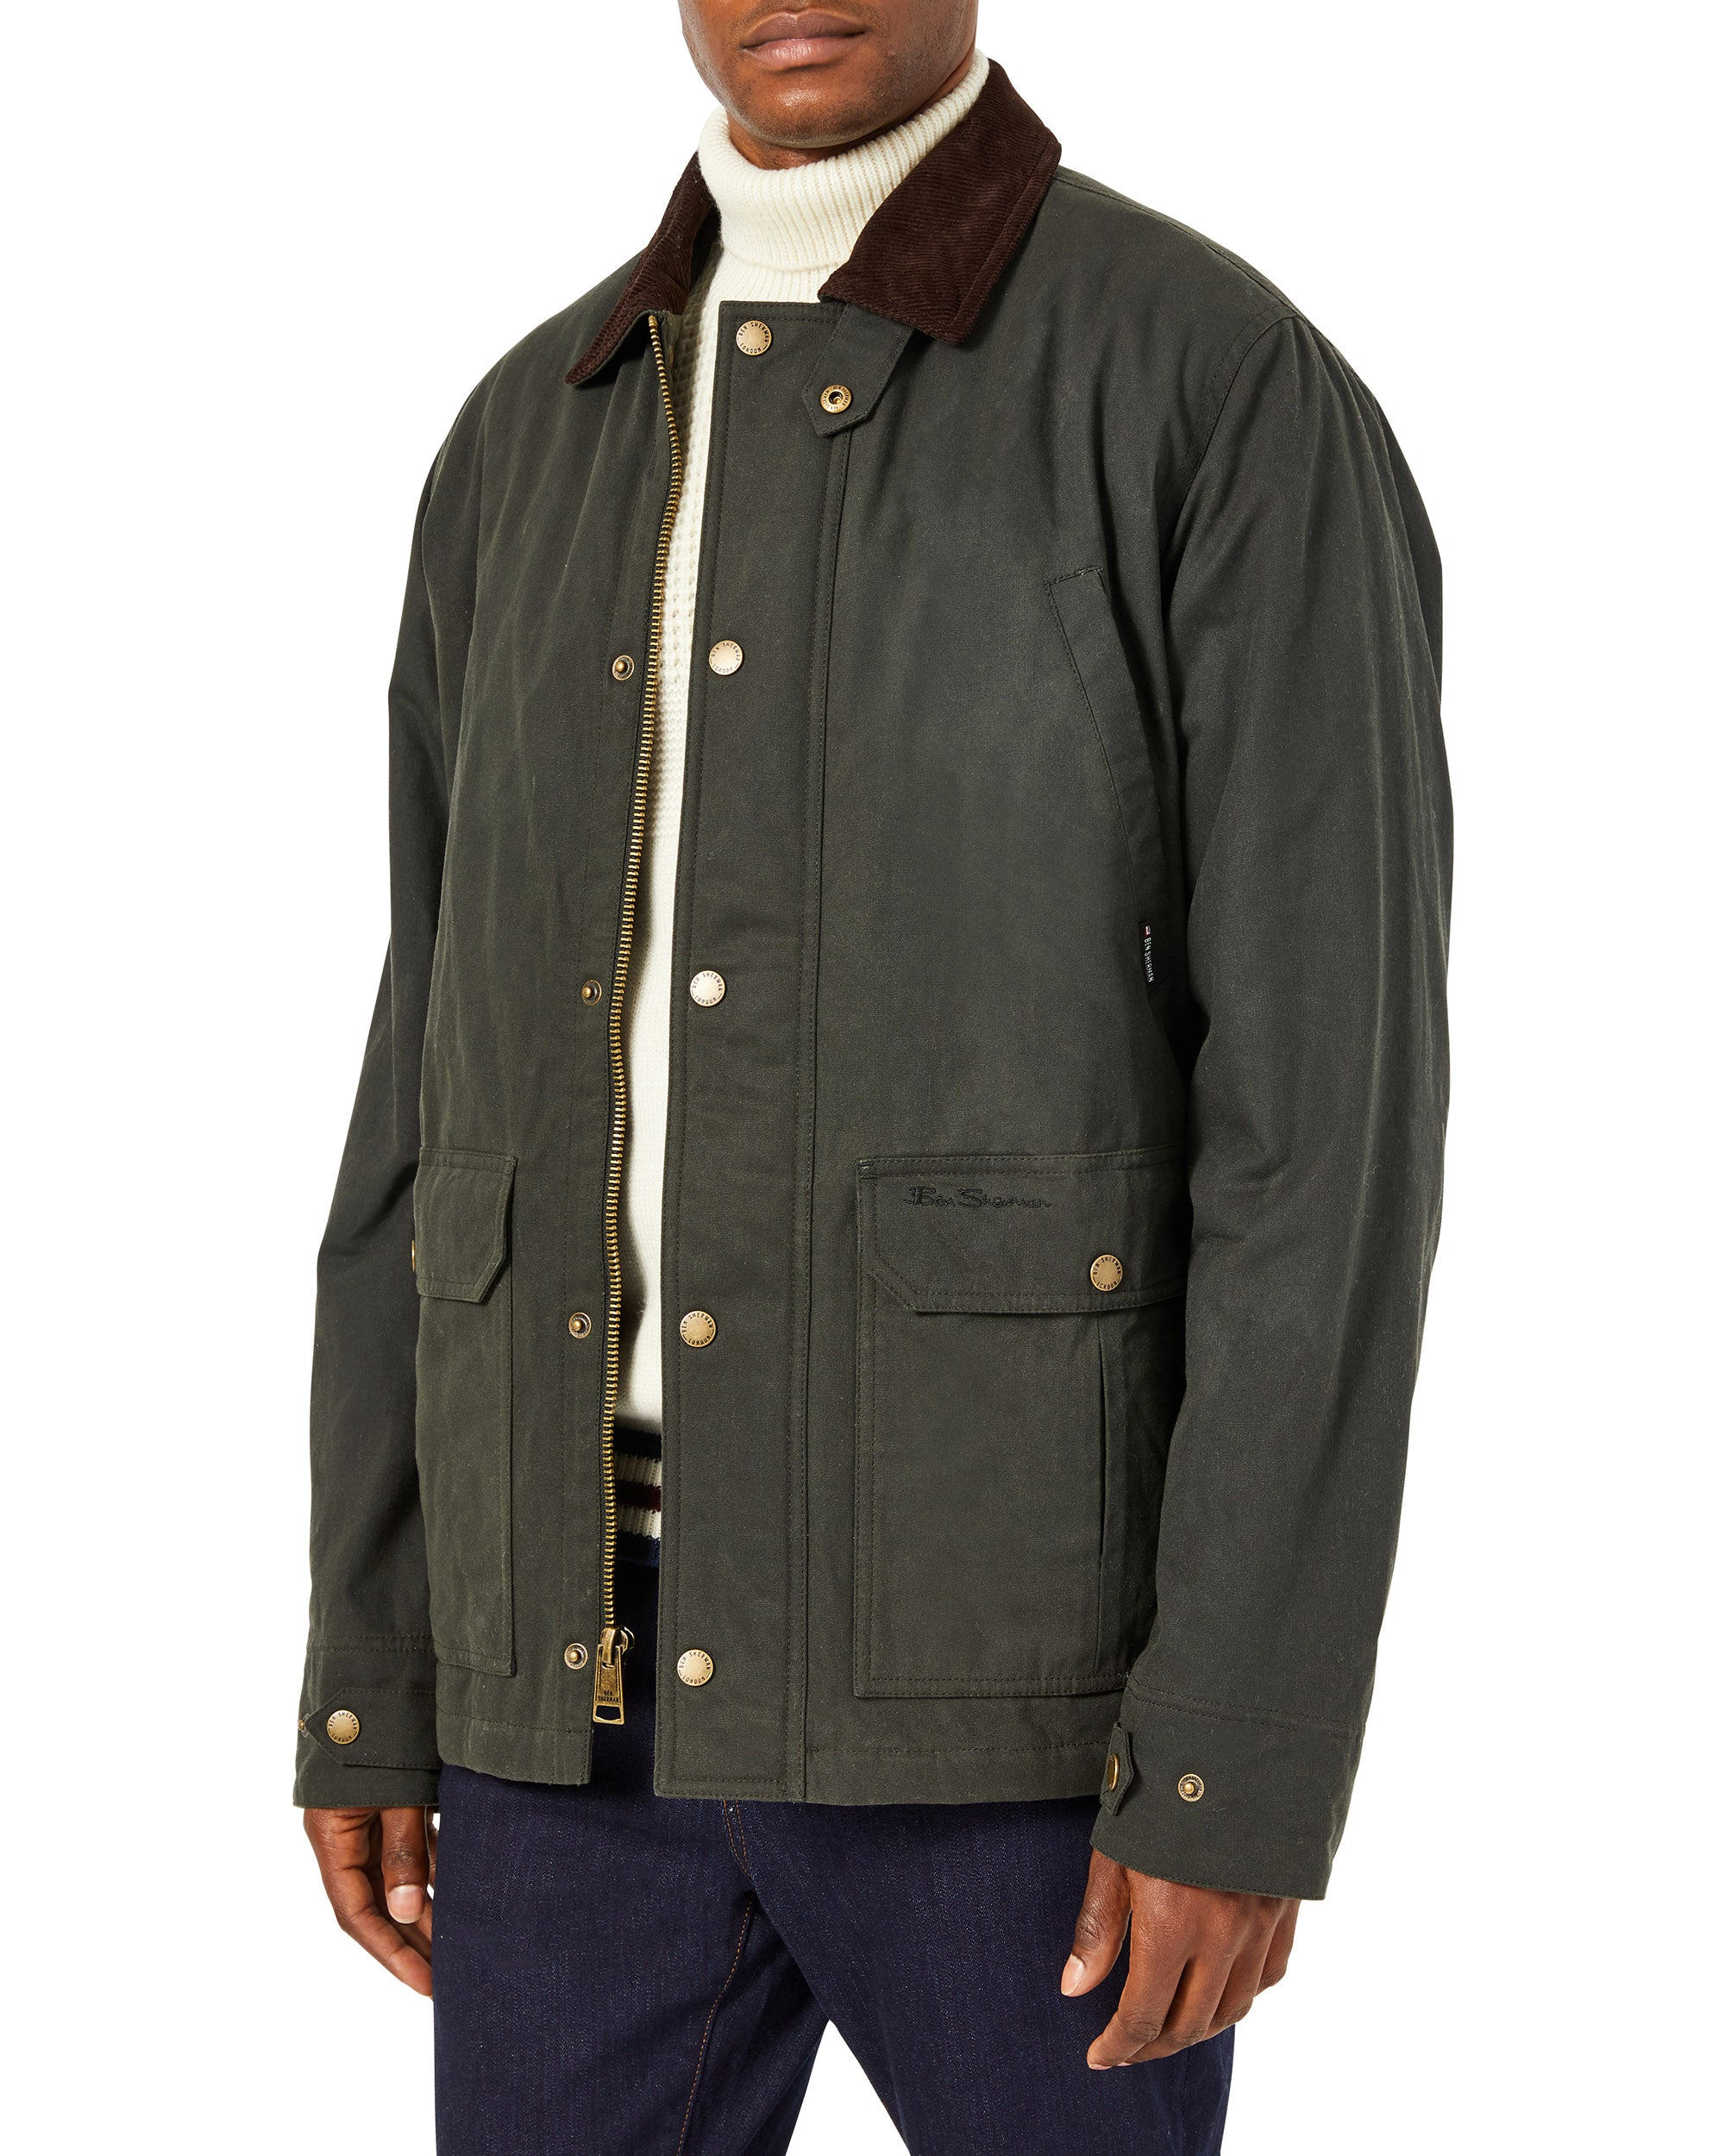 Men's Coated Cotton Jacket with 2 oz. Fill - Loden